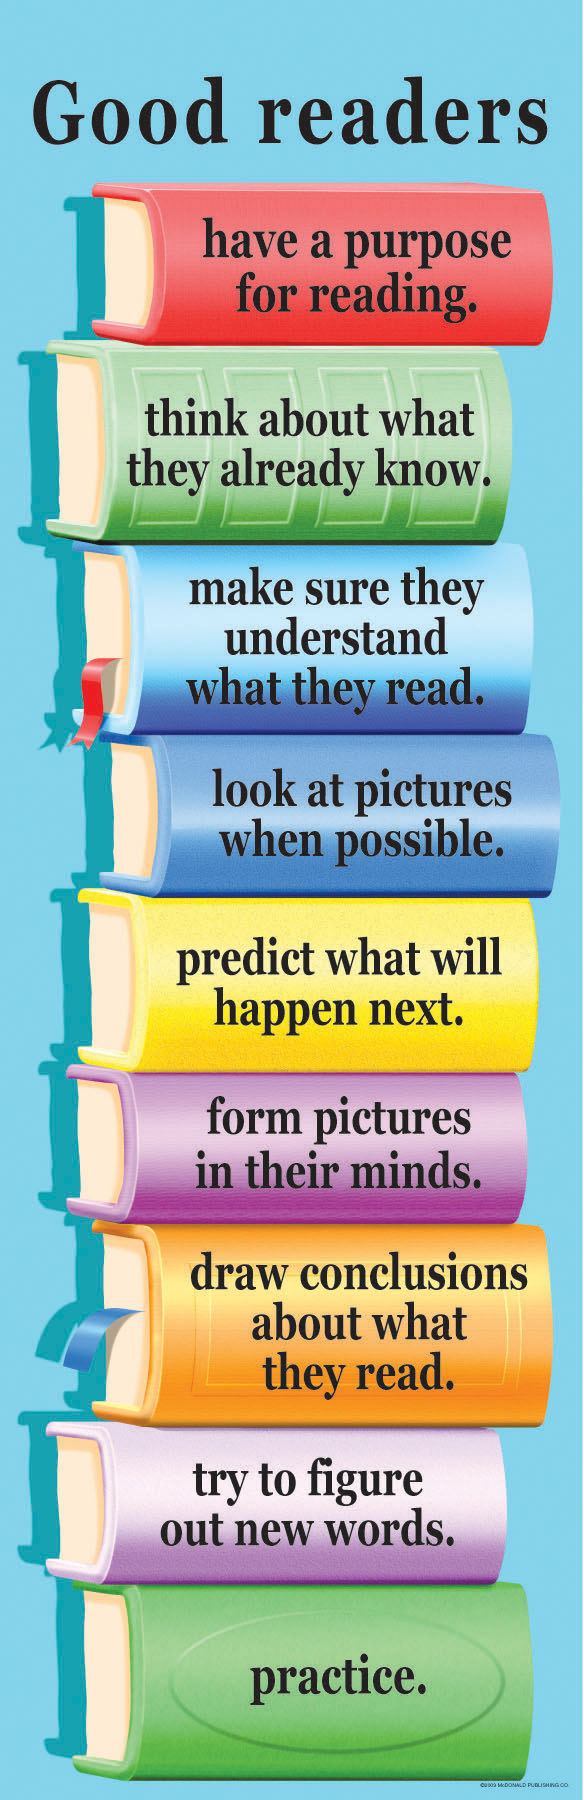 Reading Classroom Decor : What good readers do colossal poster middle school